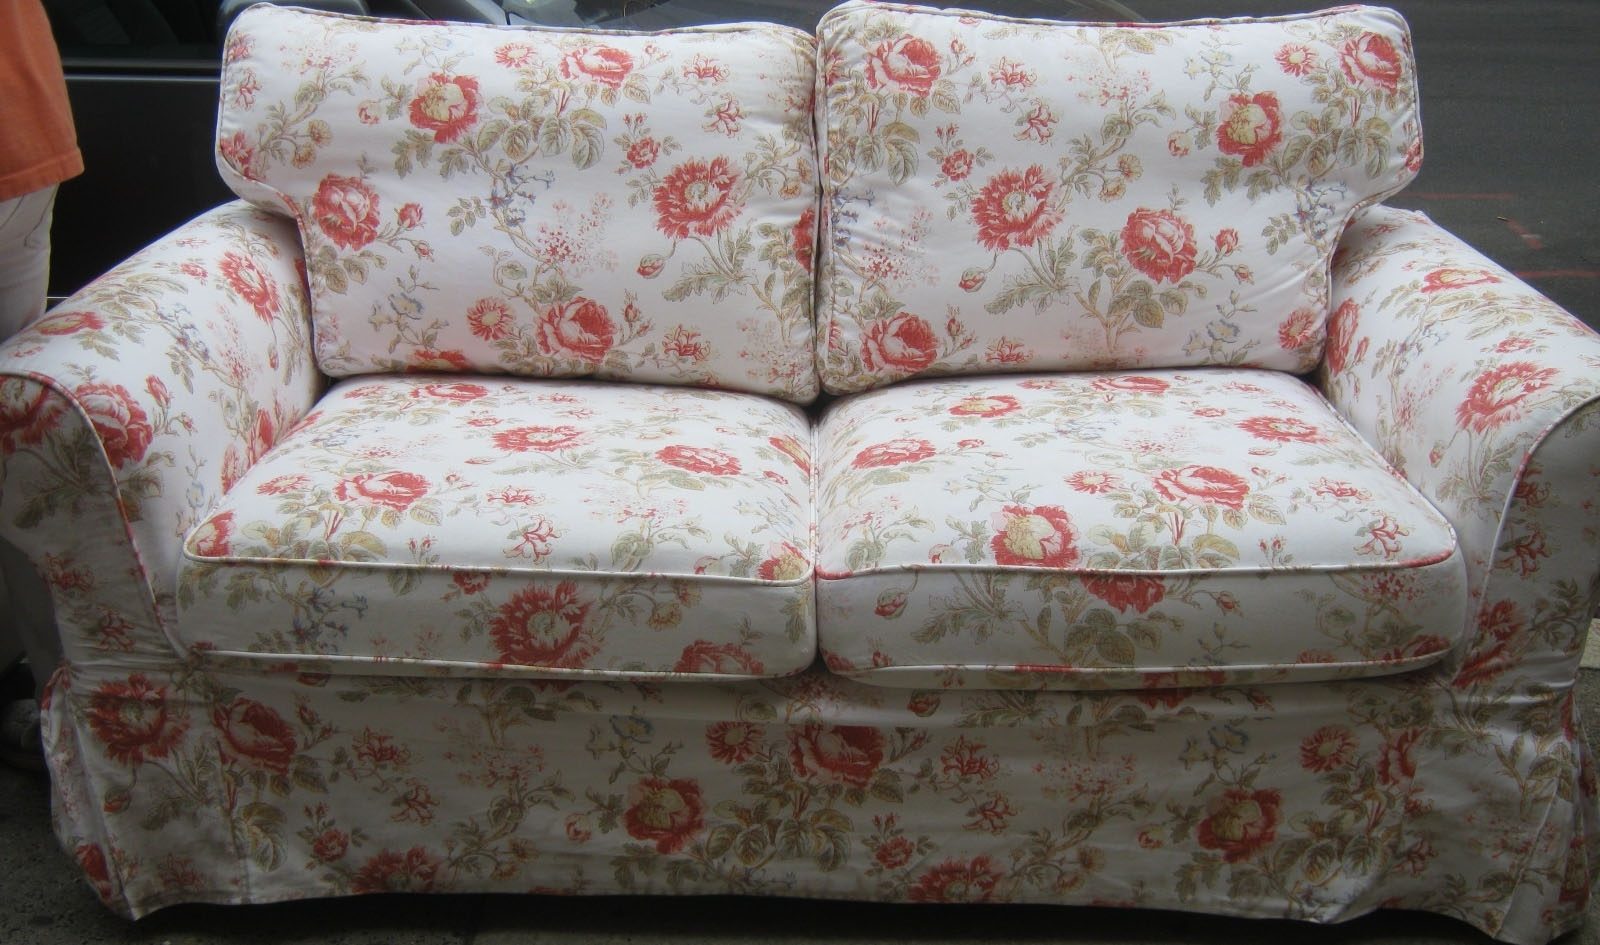 Recent Furniture : Floral Couch And Loveseat Used Furniture Gallery With Regard To Chintz Floral Sofas (View 11 of 15)